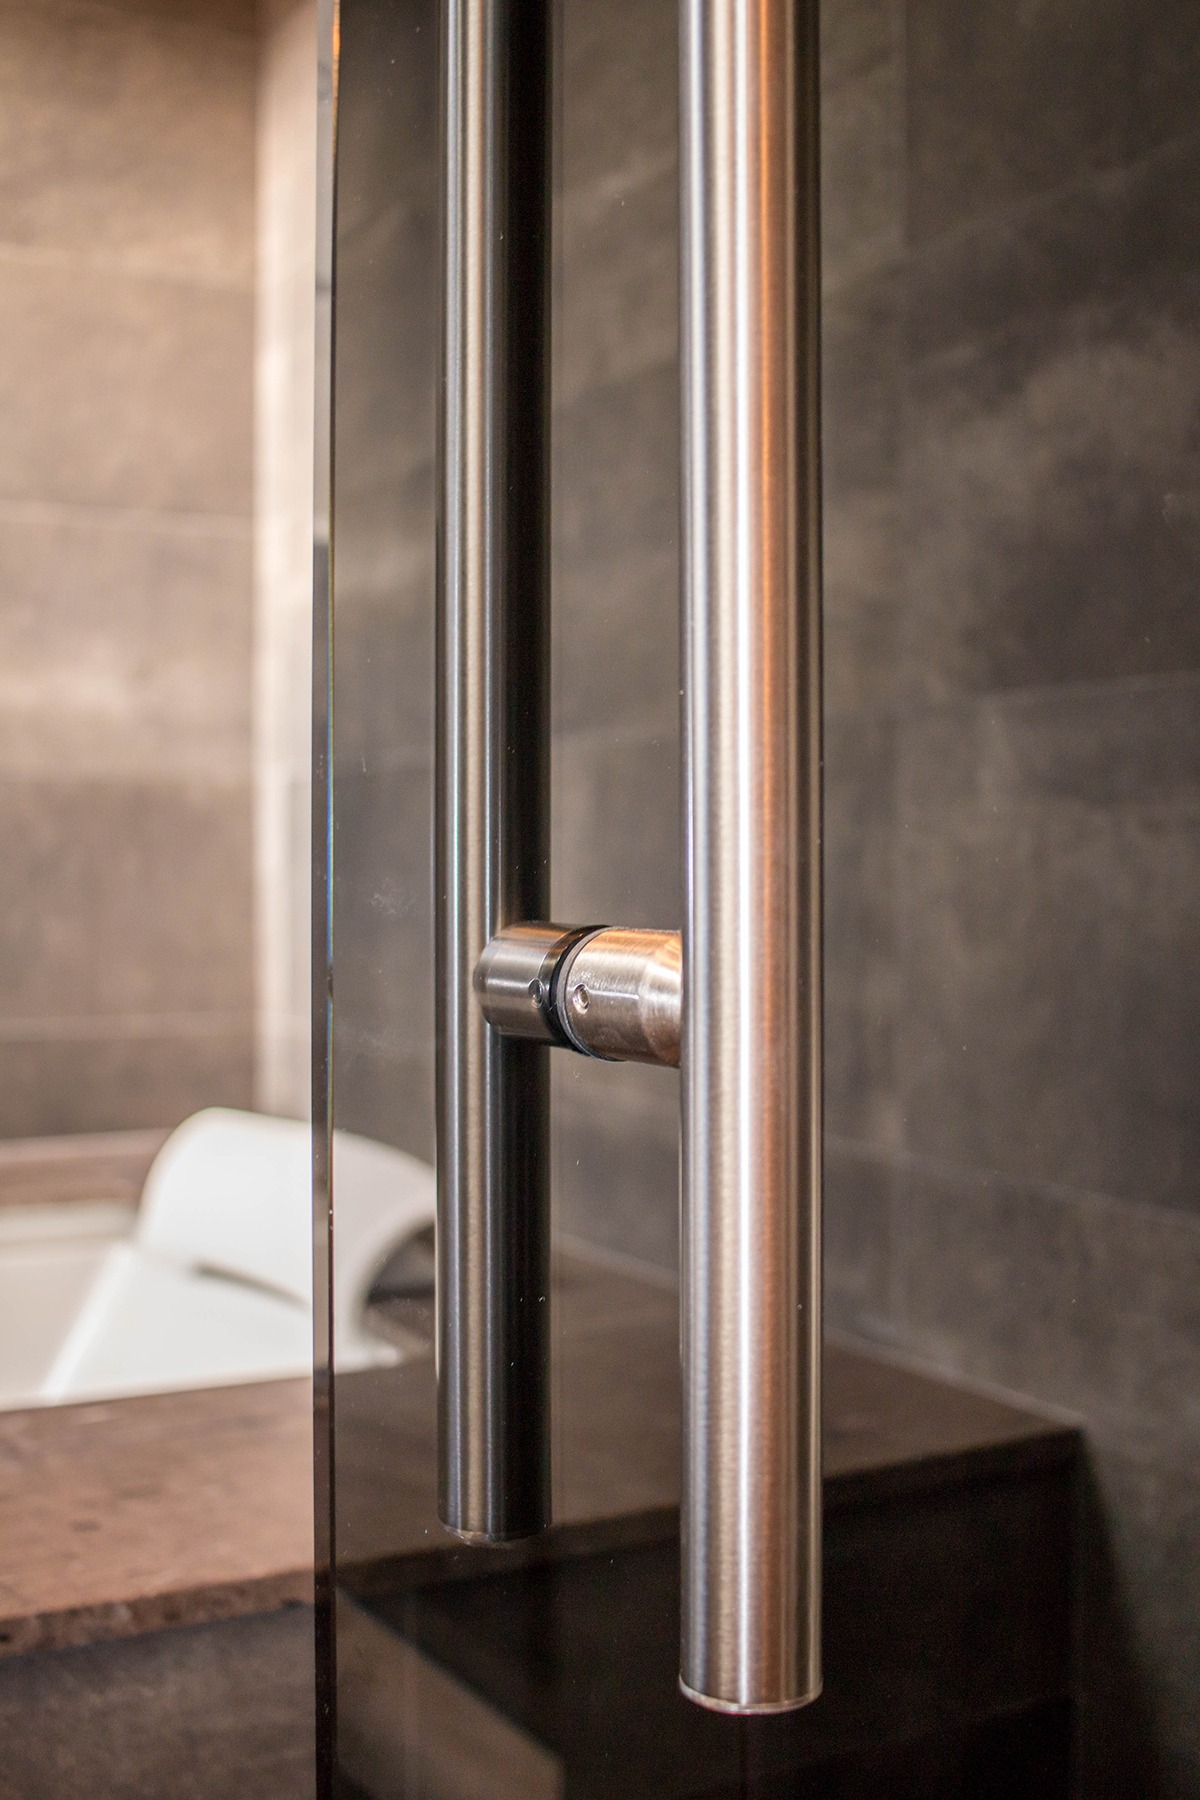 Close-Up of Polished Stainless Steel Handle on Grey Glass Bathroom Door